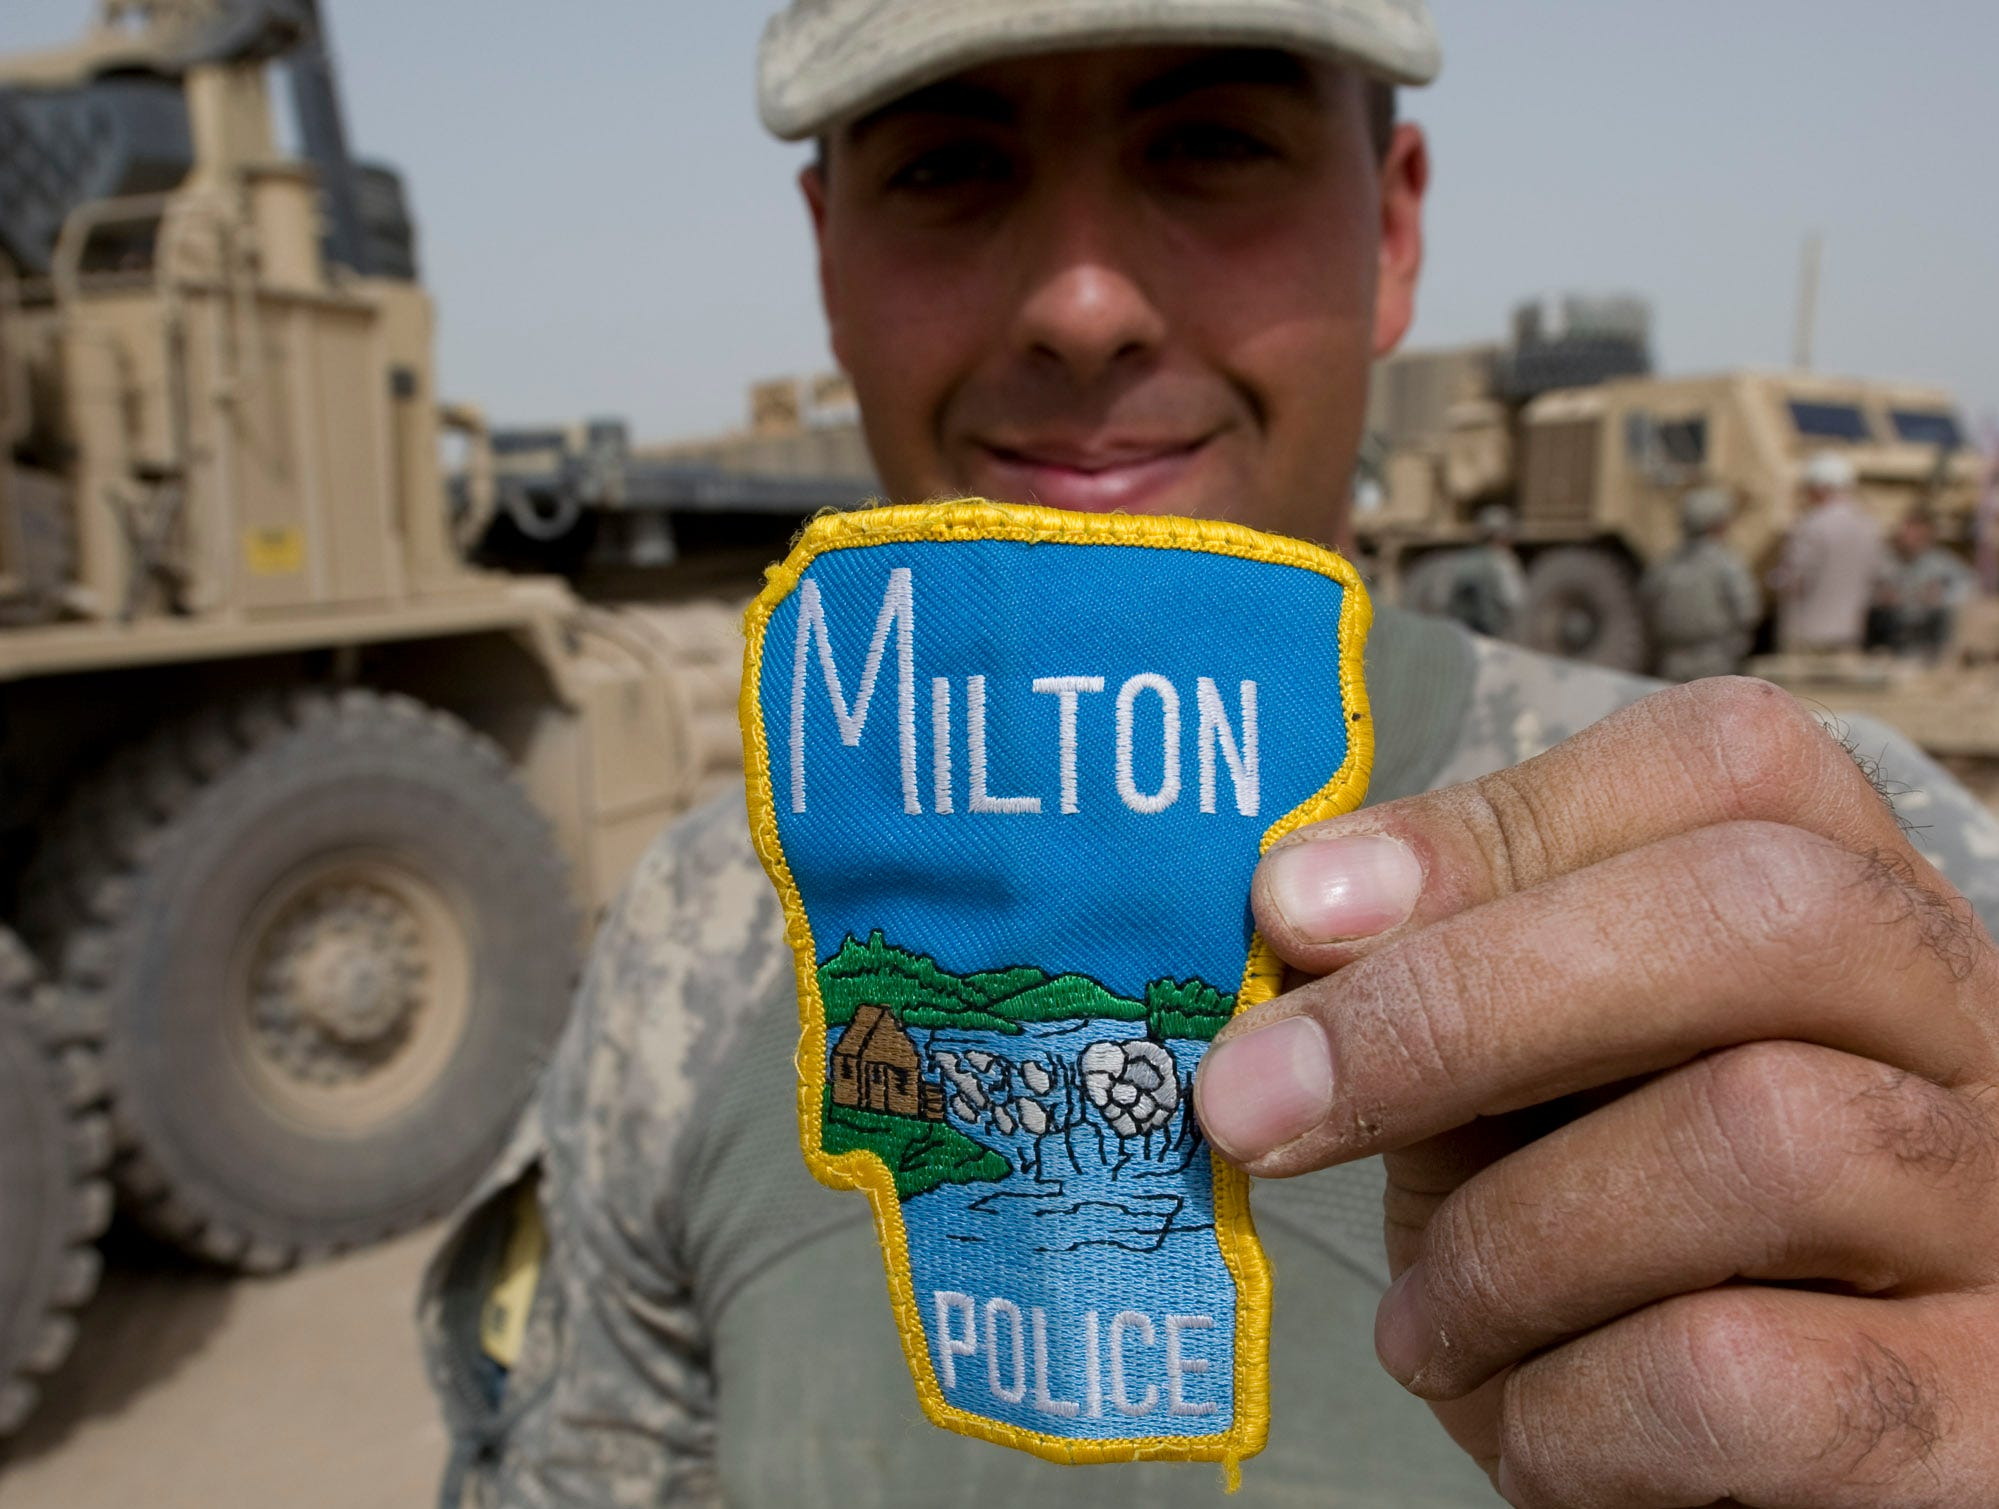 Vermont National Guardsman Sgt. Warren Burnor of Johnson, Vt., shows off his Milton Police patch after Echo Company arrived at a new Afghan Combat Post in Rahman Kheyl, a remote part of Afghanistan in southern Paktia Province, on Tuesday, September 14, 2010.